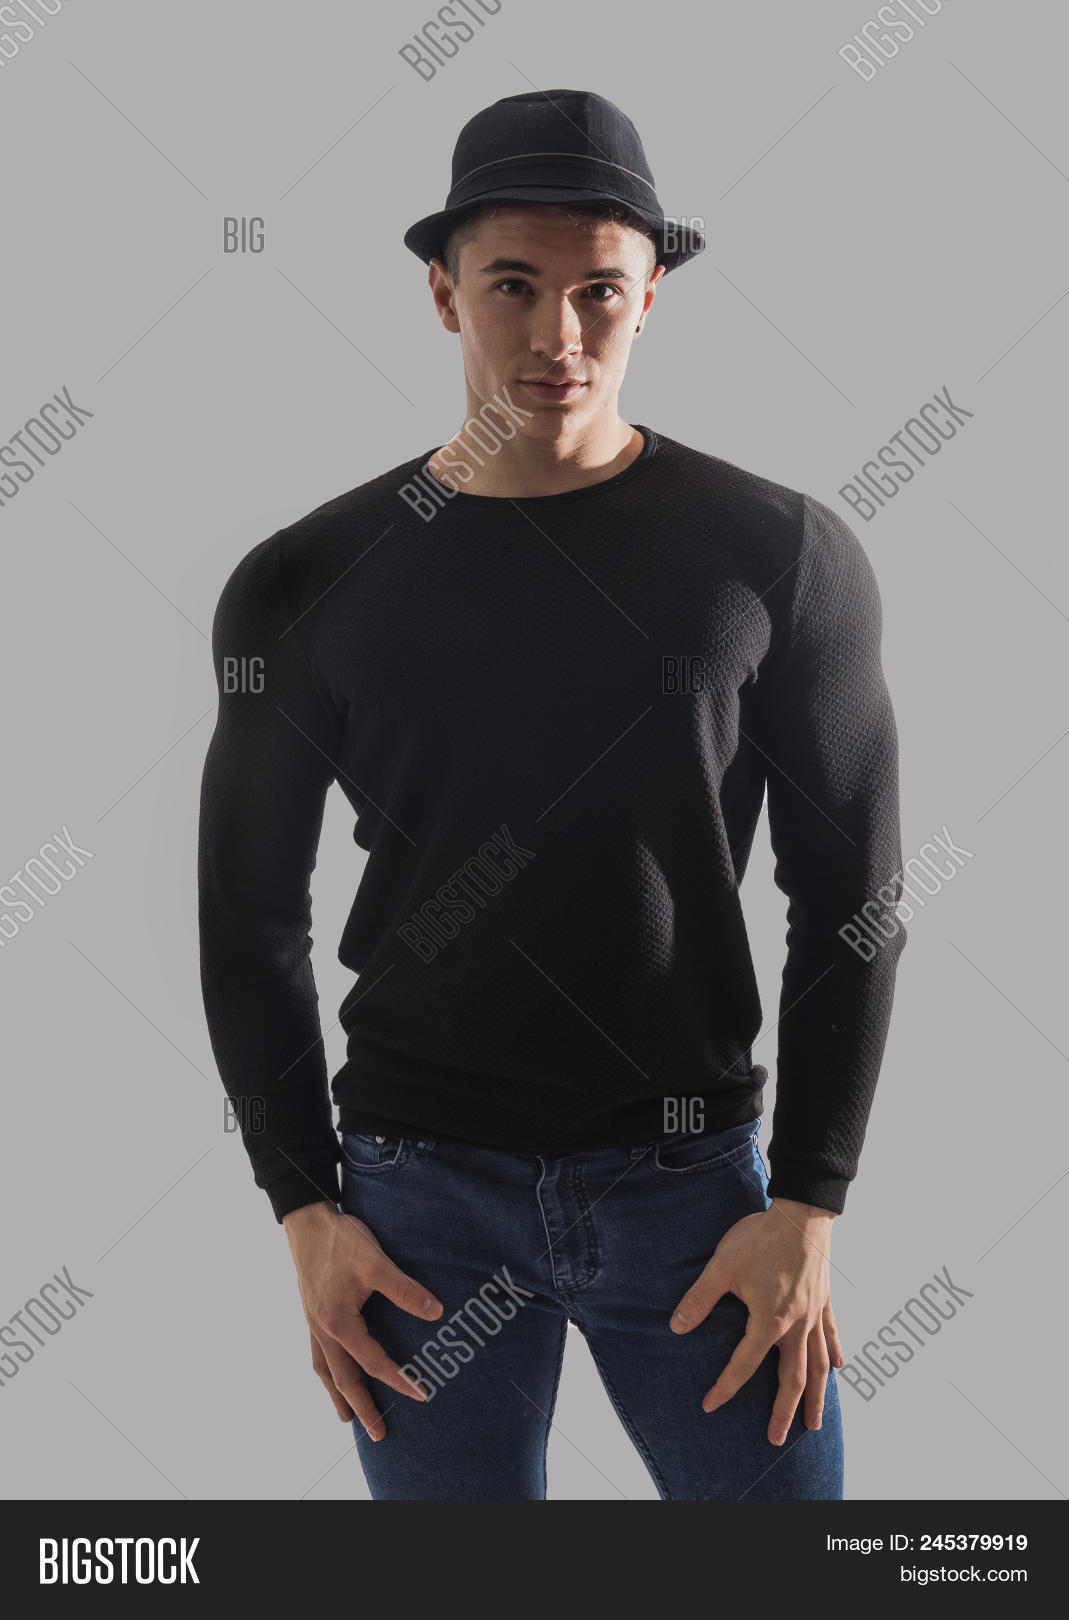 6cbe45a7eb4ae Handsome Young Muscular Man Looking At Camera In Studio Shot